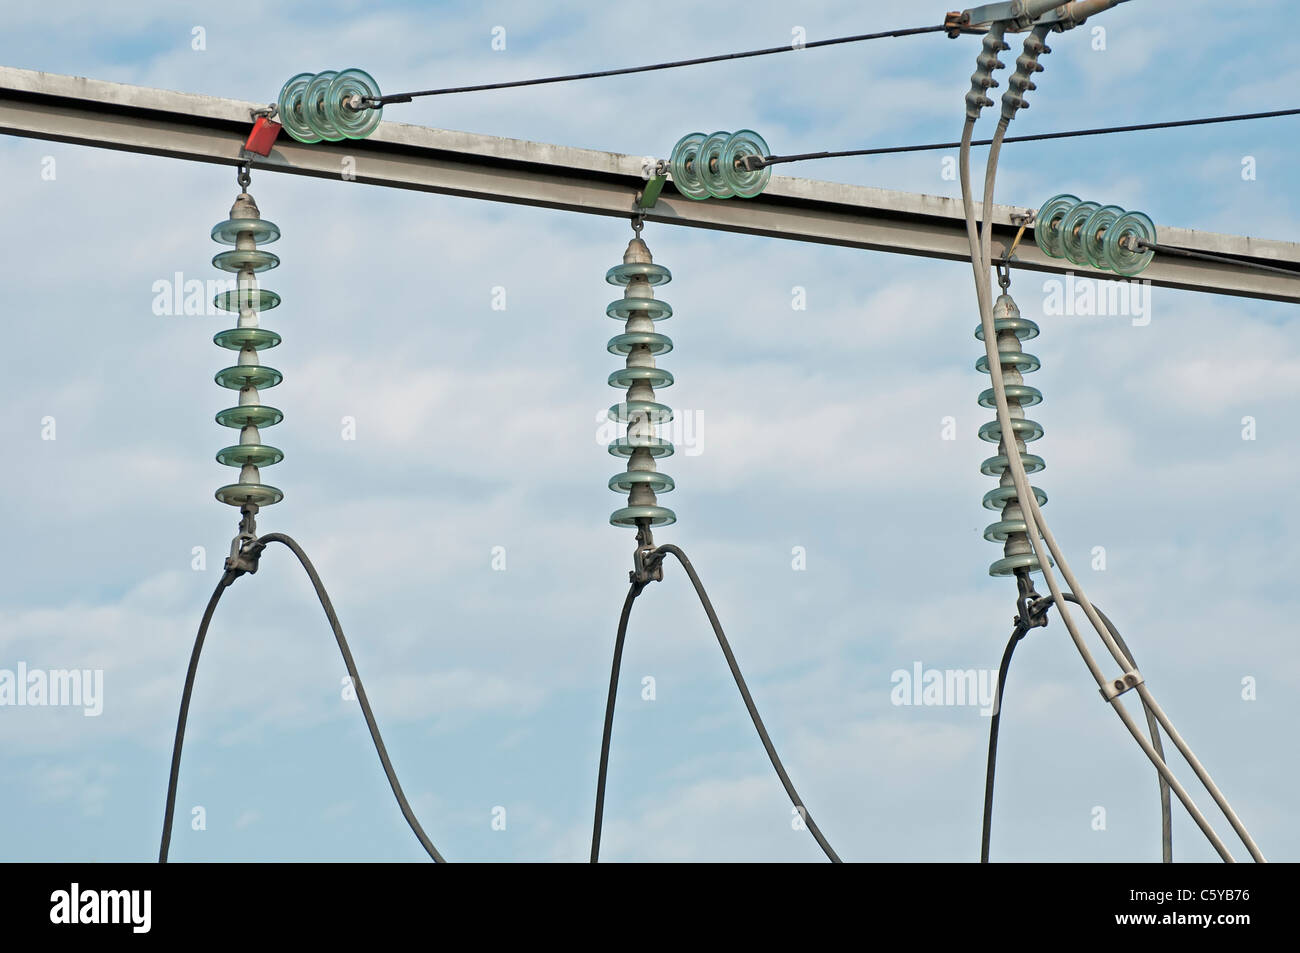 High-voltage wire connections Stock Photo: 38095546 - Alamy